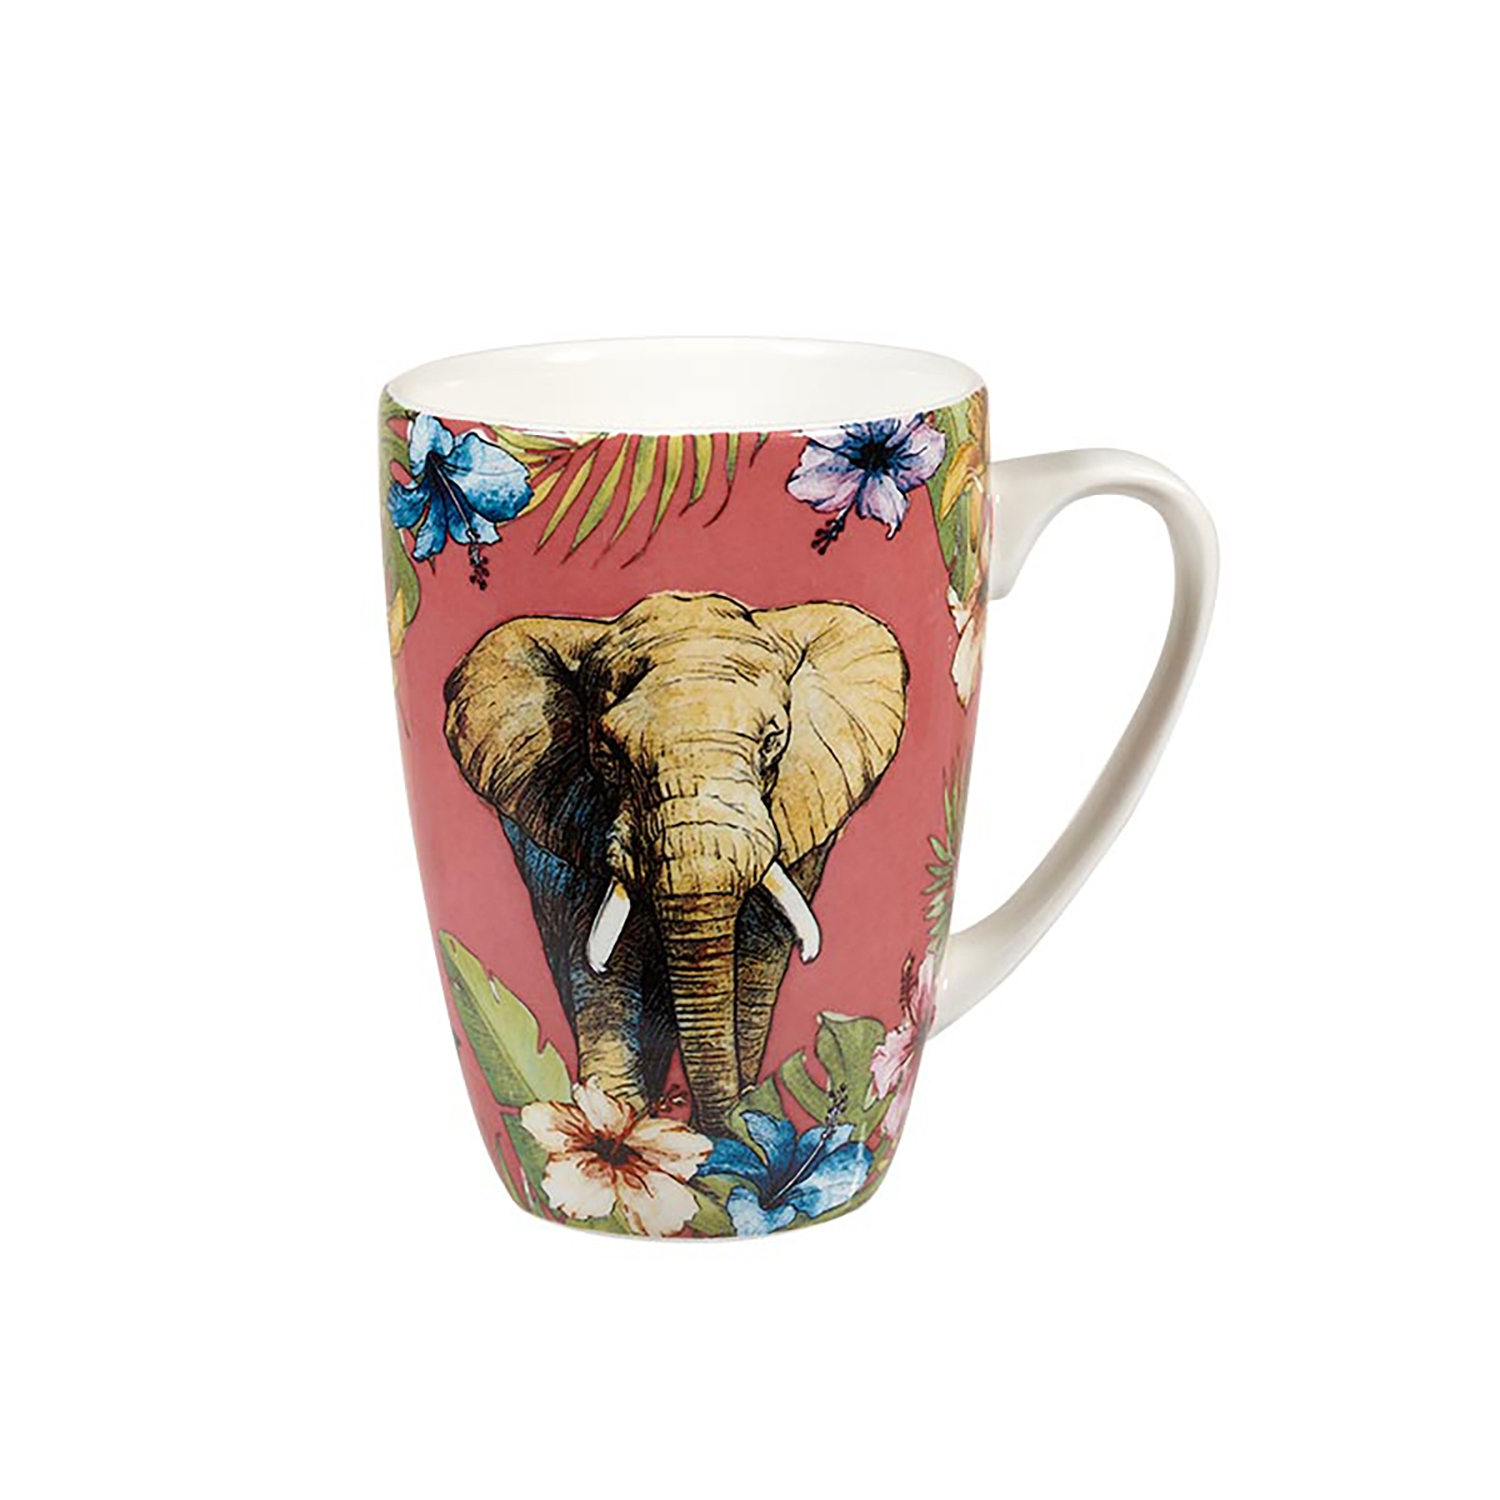 Image of Churchill China, Elephant Mug, 275ml, Asstd